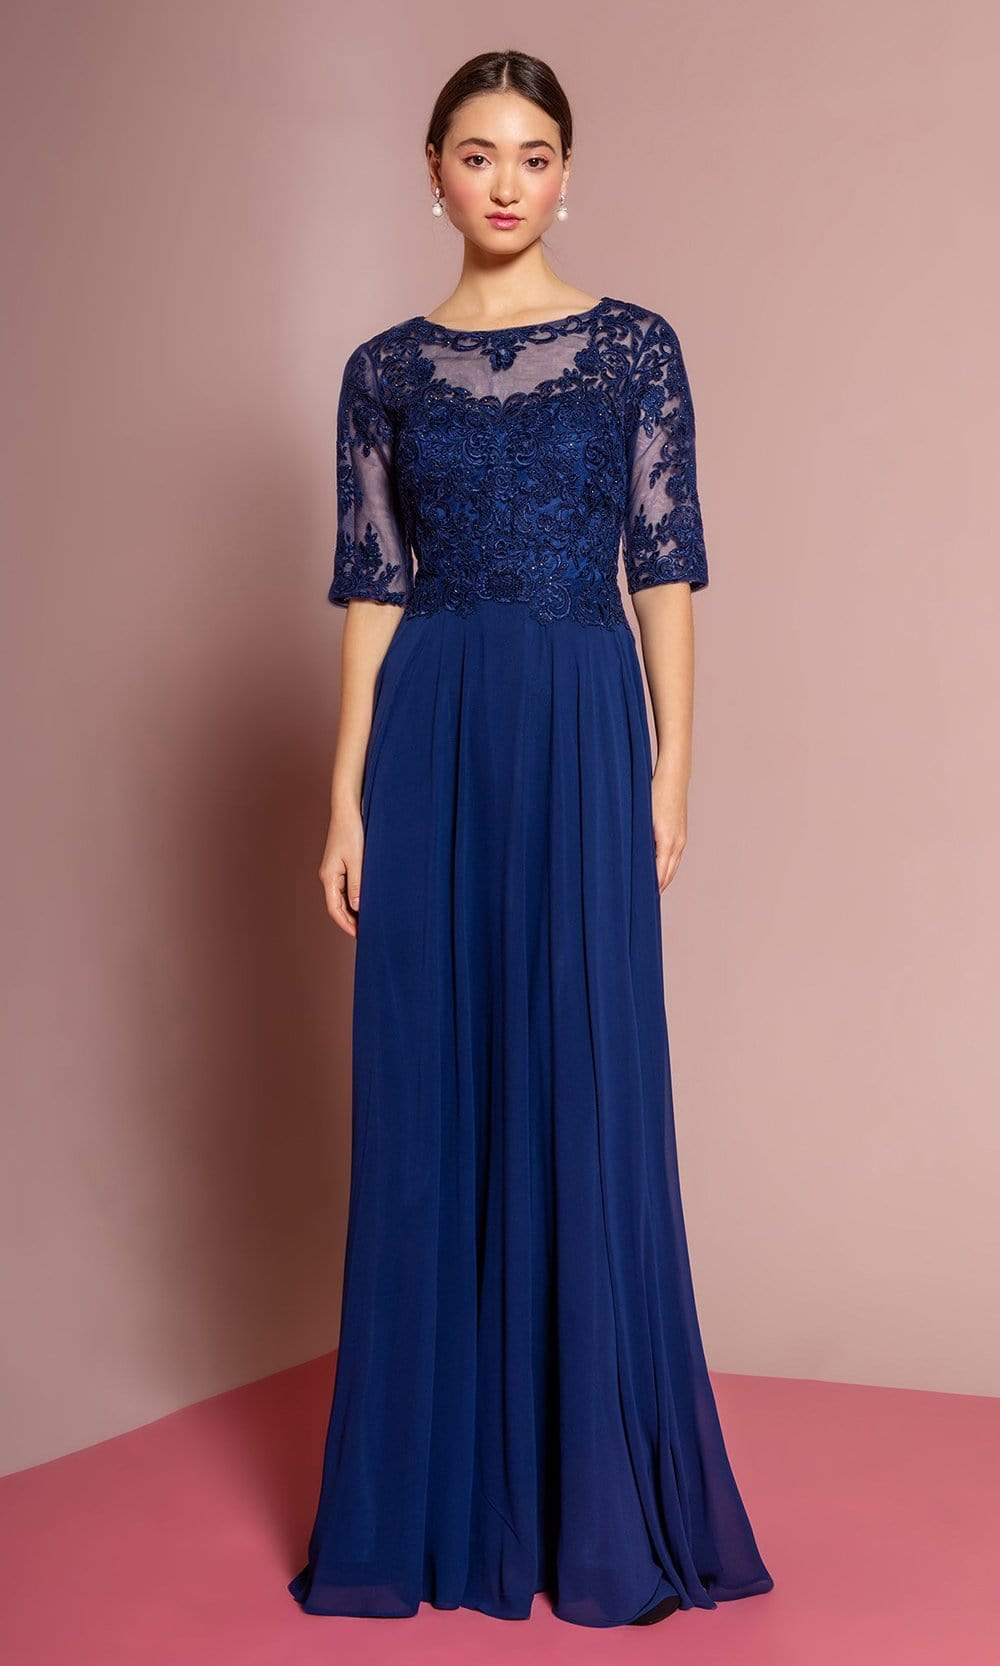 Elizabeth K - GL2681 Half Sleeve Embroidered Illusion Lace Gown Special Occasion Dress XS / Navy